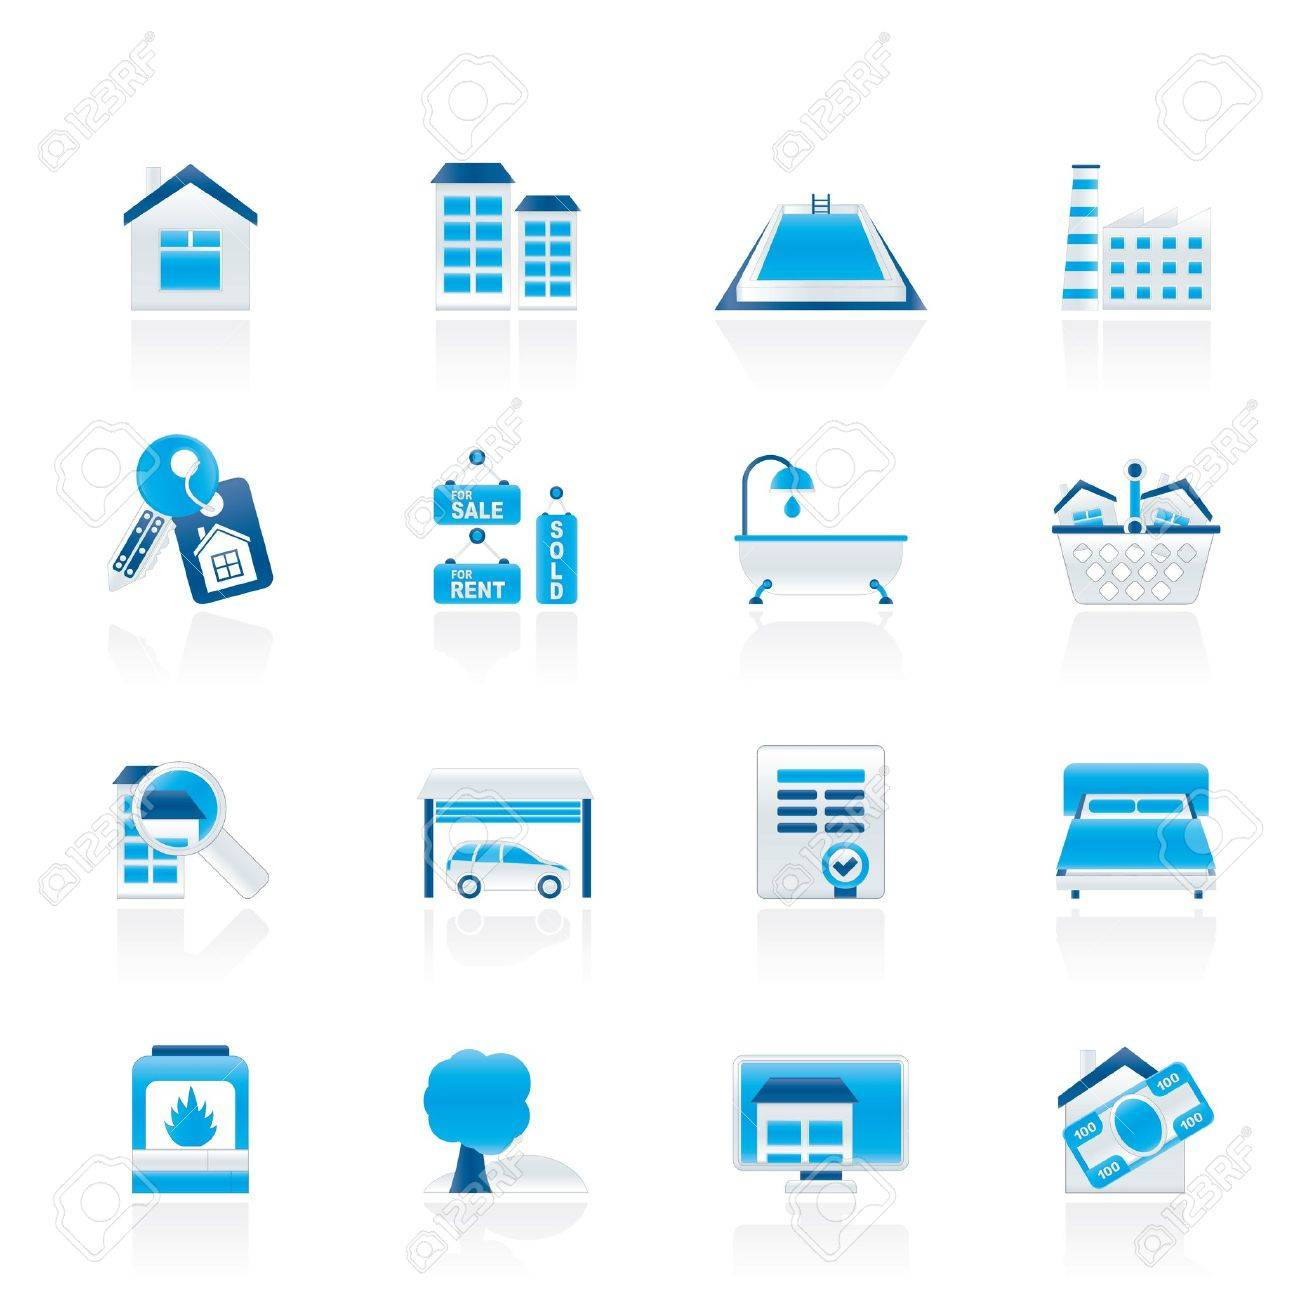 Real Estate objects and Icons Stock Vector - 11195302